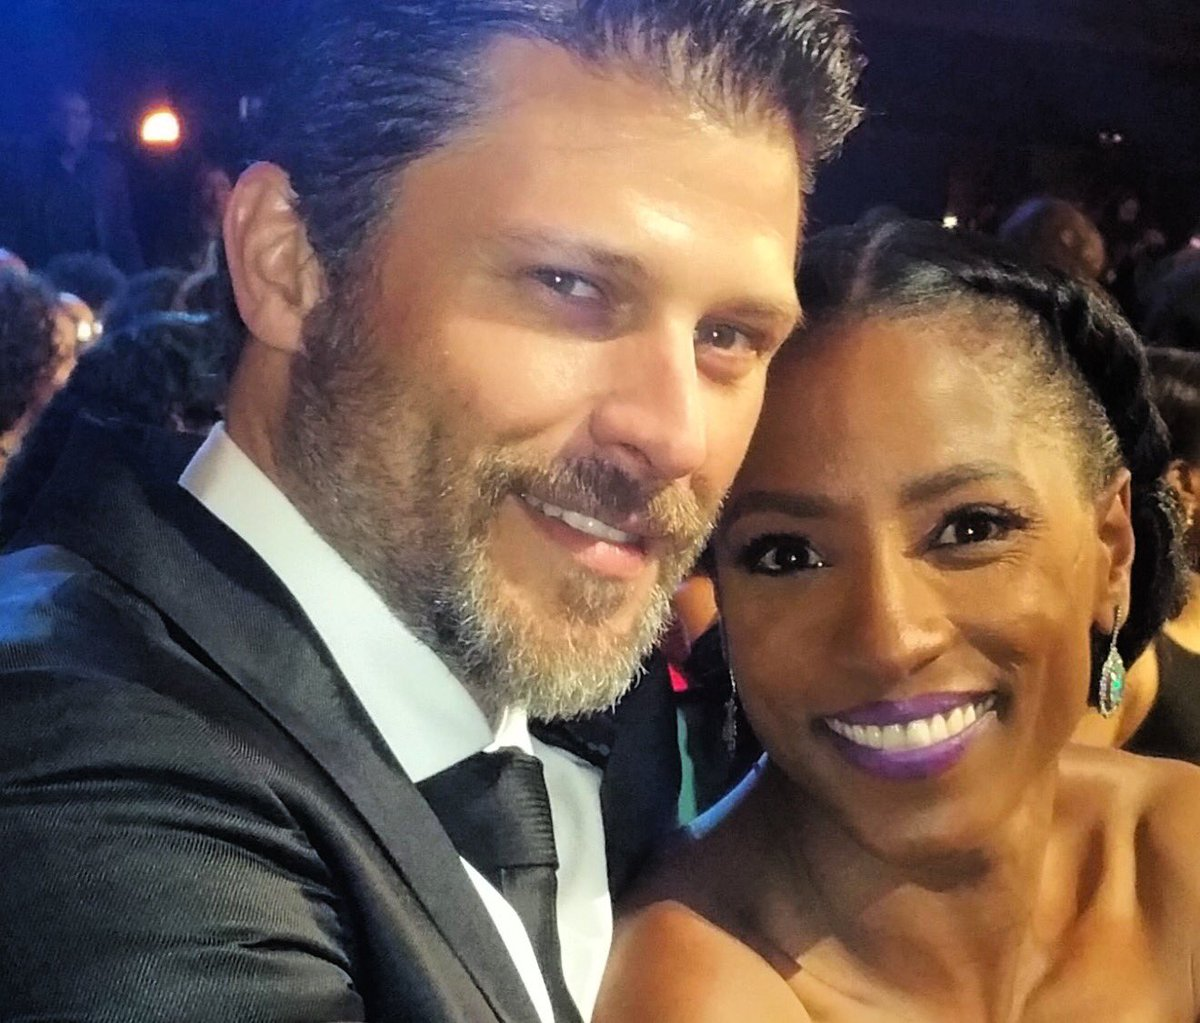 vaughan dating Not on twitter sign up @greg_vaughan @rutinaofficial @queensugarown what a beautiful picture of two very beautiful people, both inside & out much love.